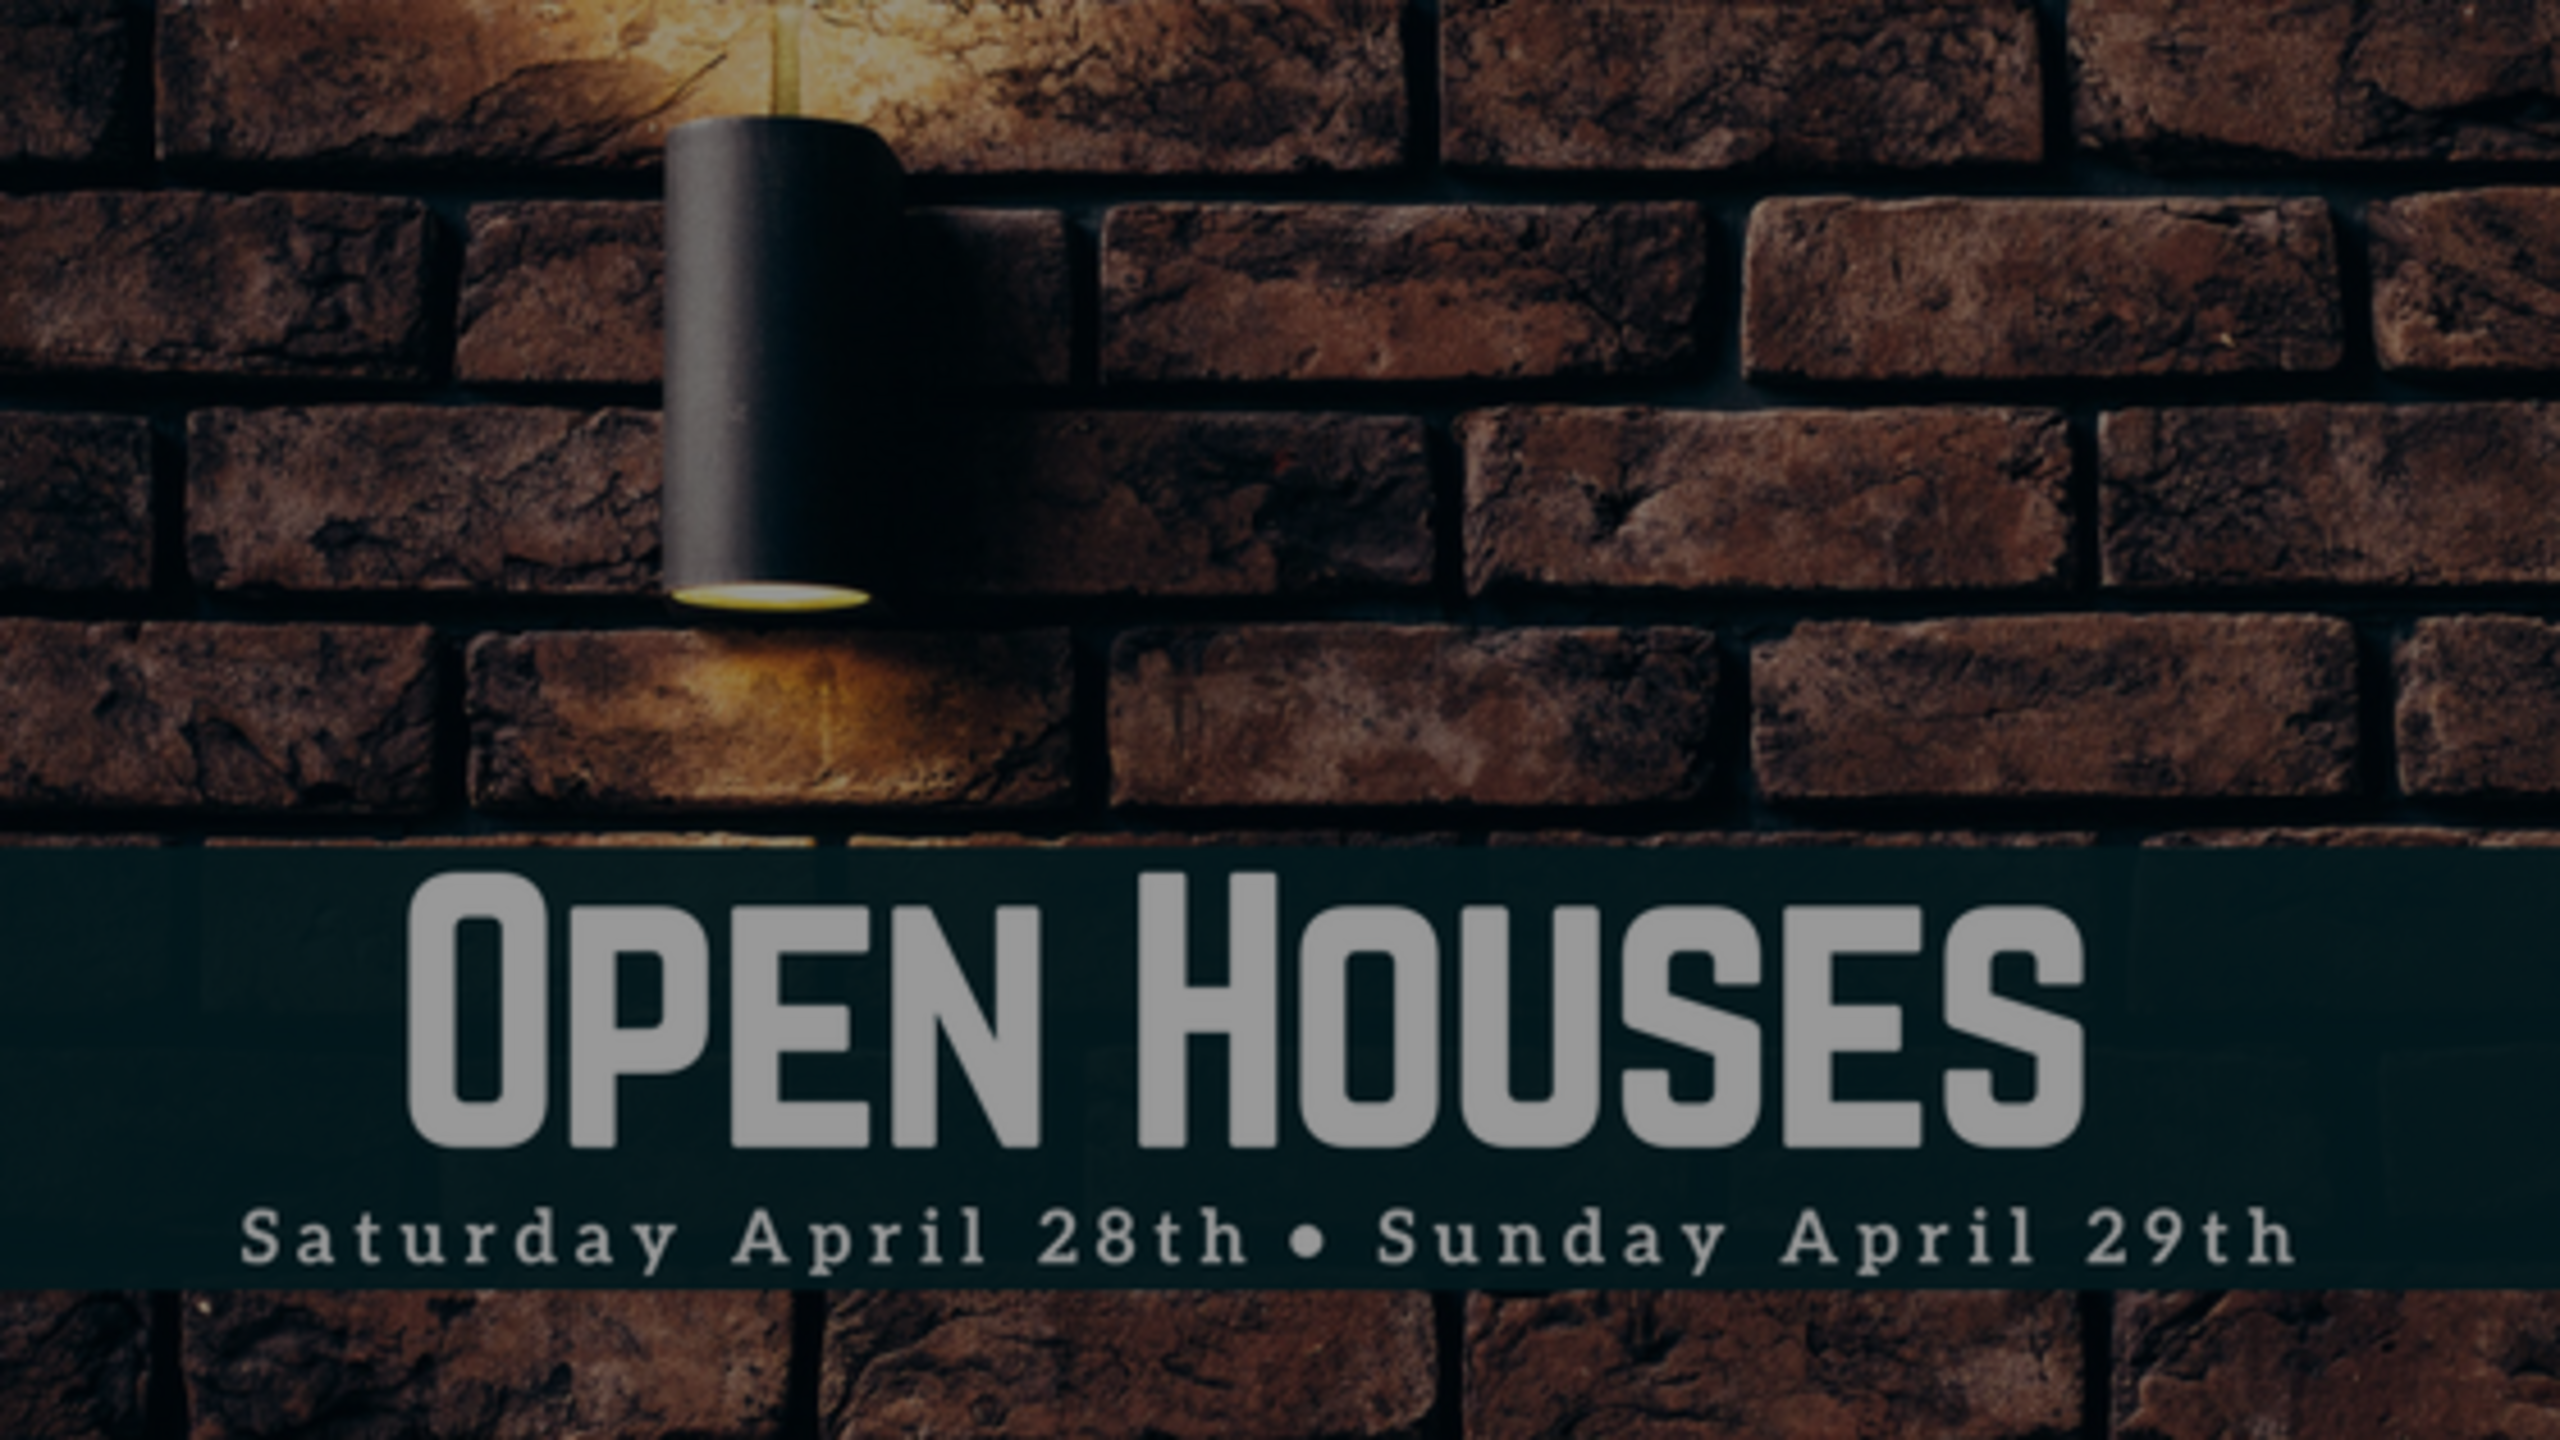 Our Open Houses: Weekend of 4/28 + 4/29